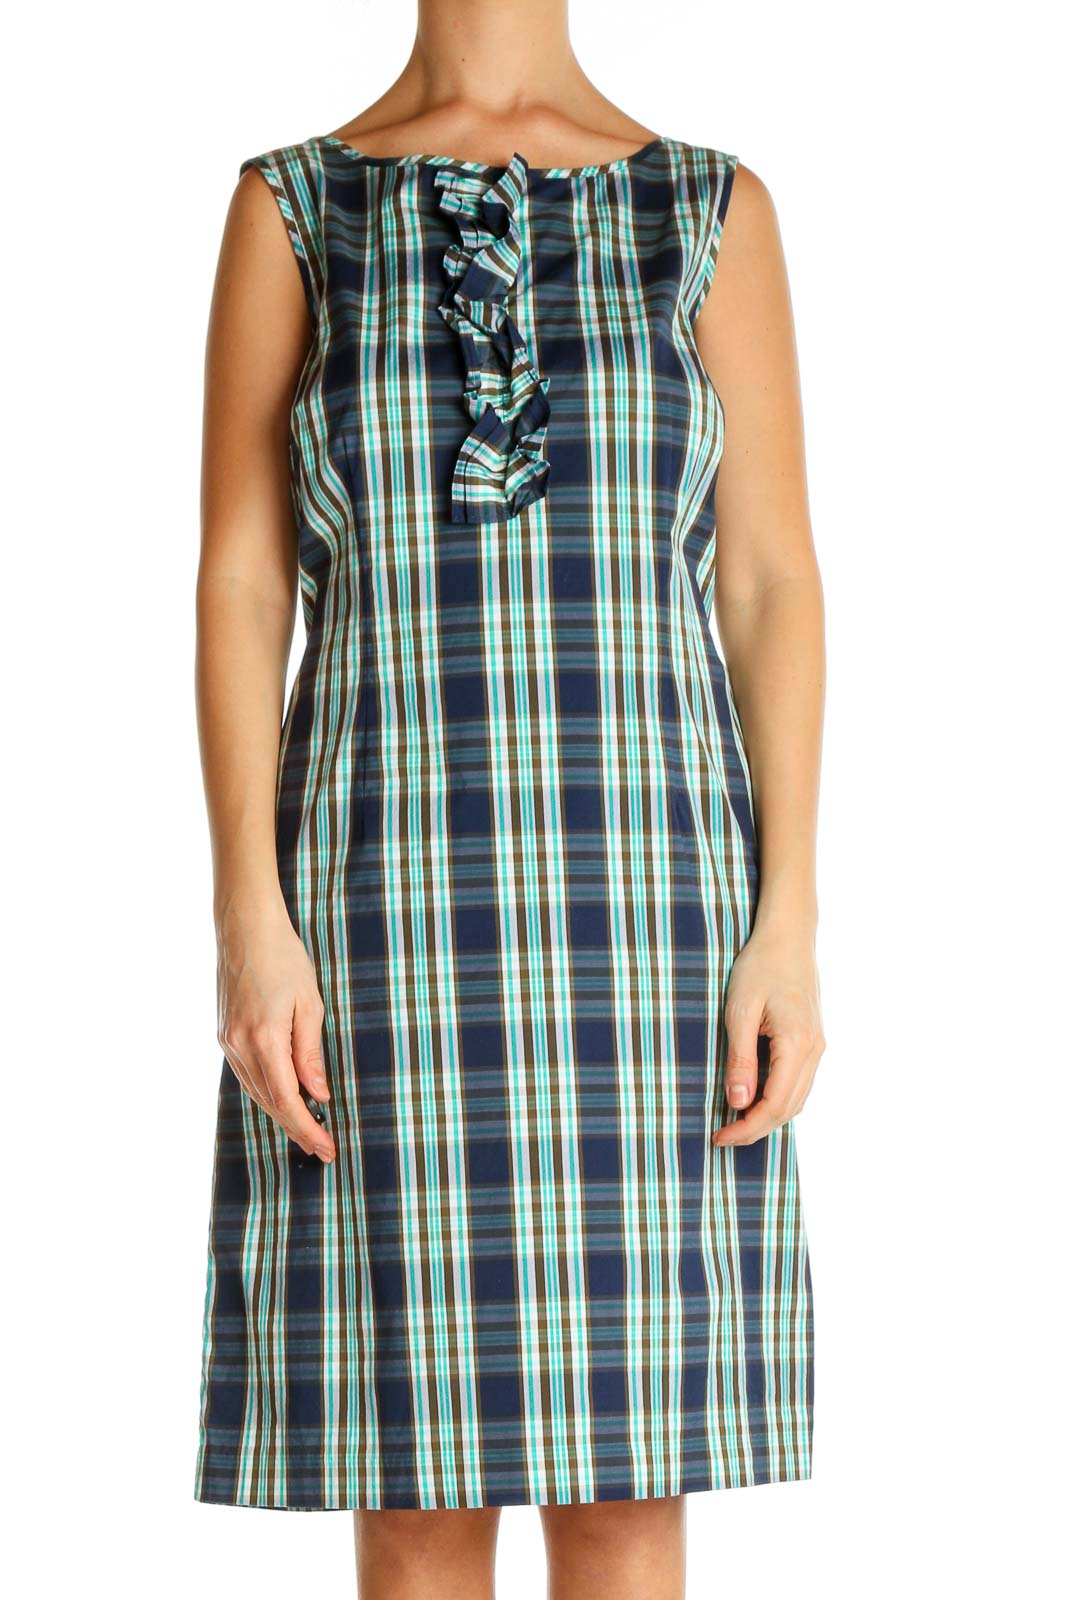 Blue Checkered Day A-Line Dress Front